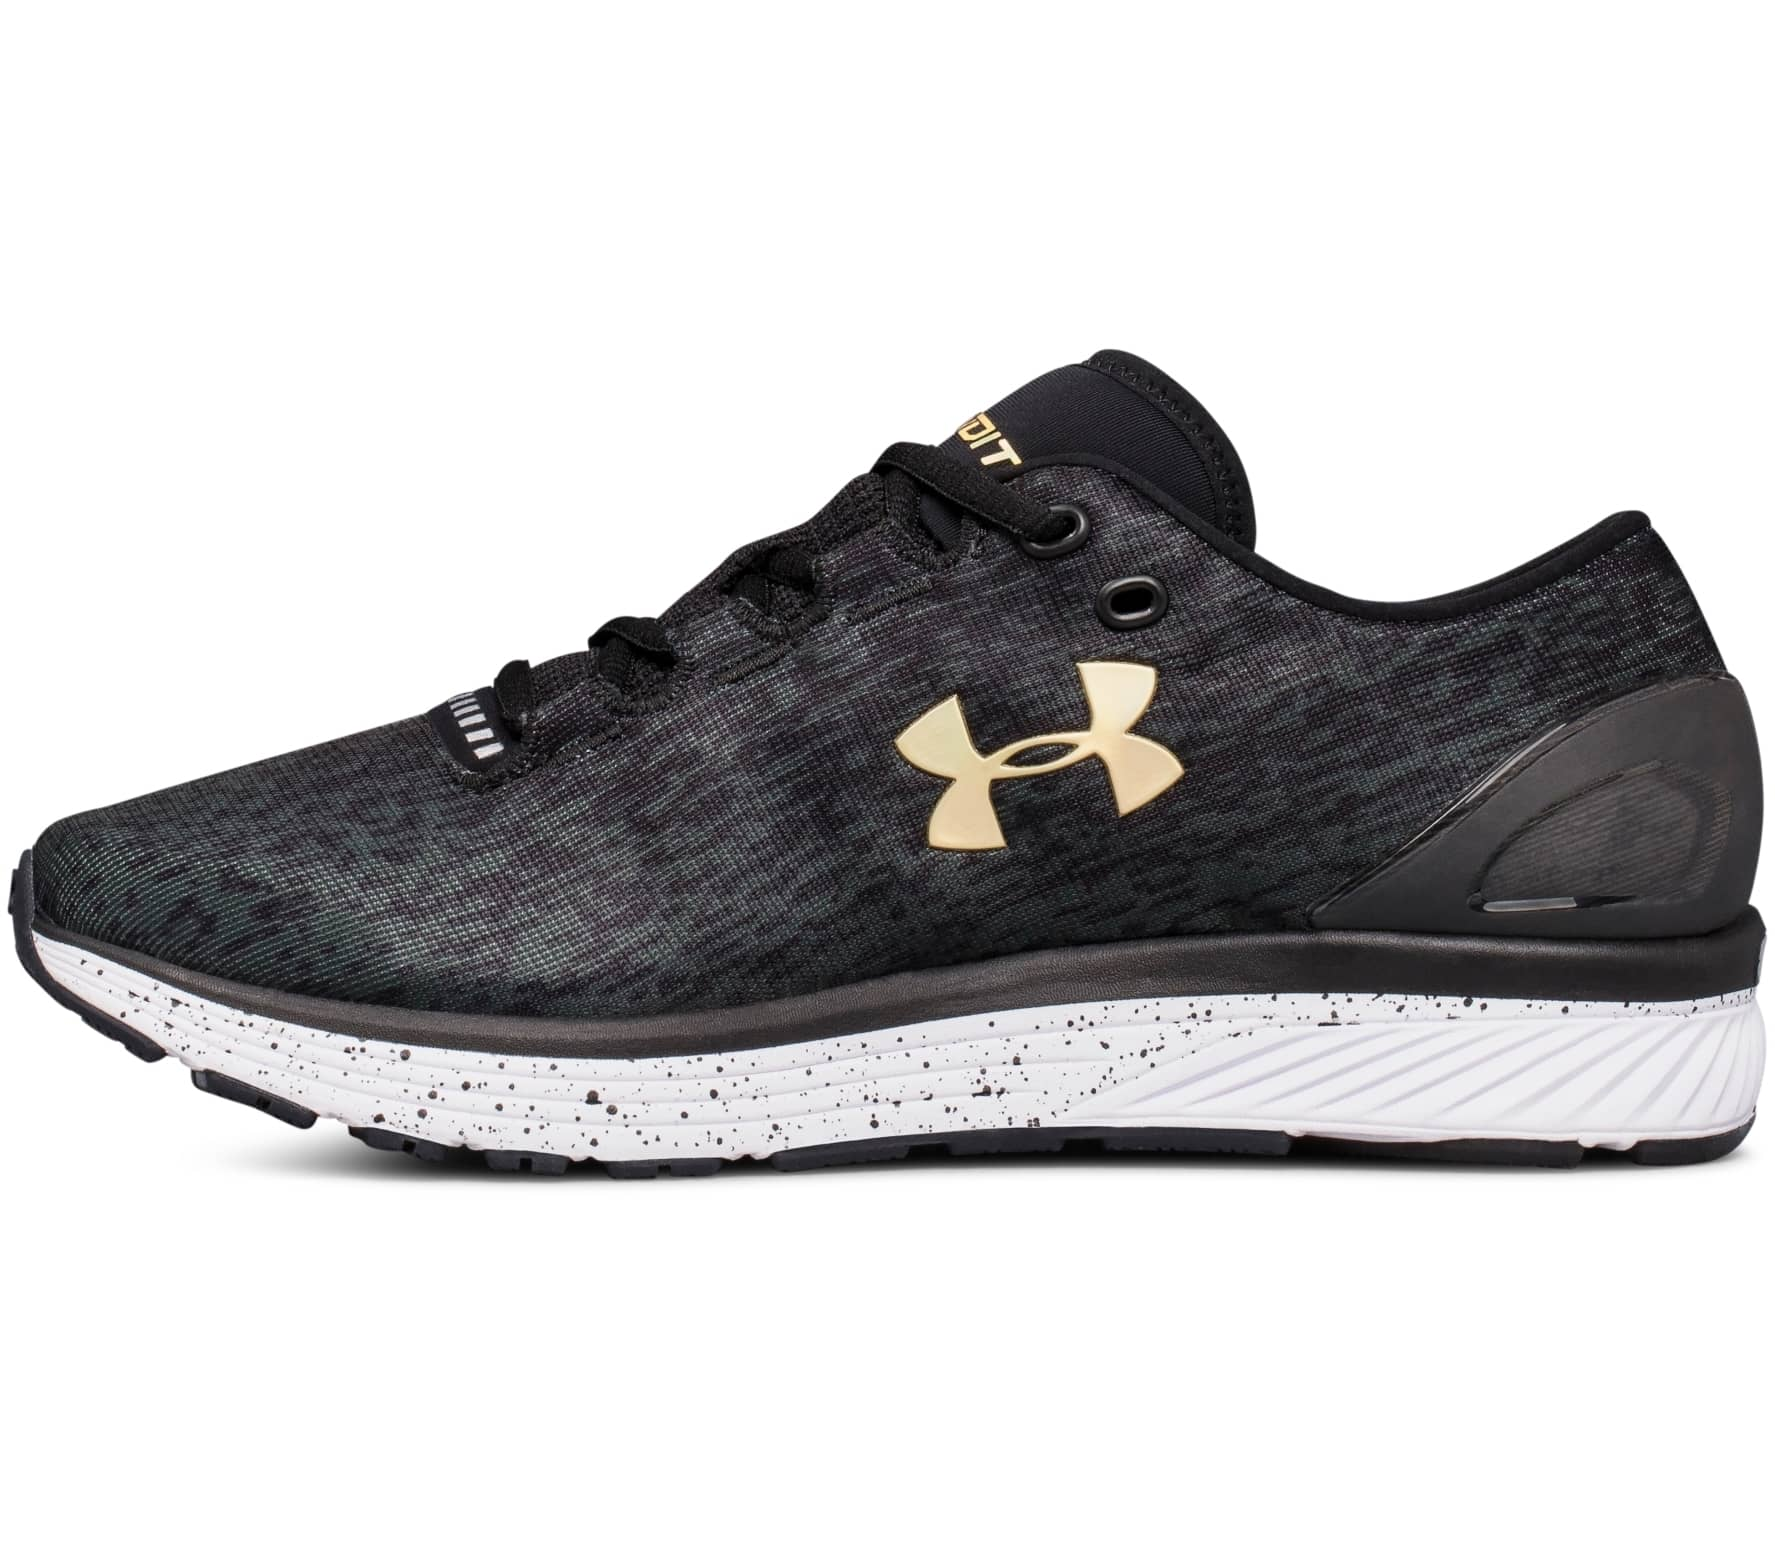 reputable site f131f a01f1 Under Armour Charged Bandit 3 Ombre Women black